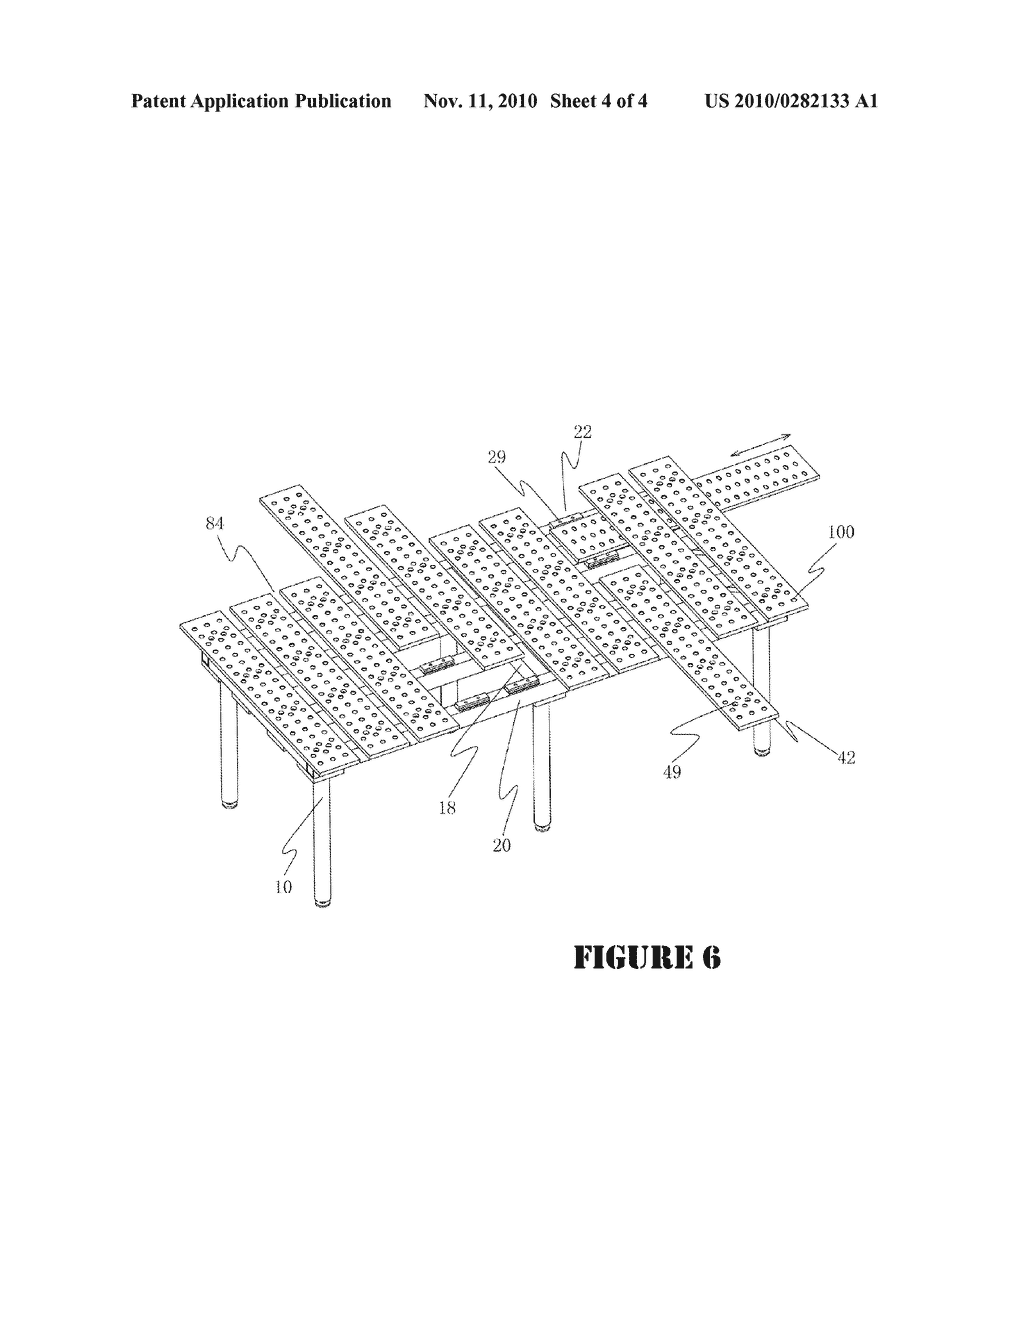 modular welding table diagram schematic and image 05 rh patentsencyclopedia com 6G Welding Position Diagram SMAW Welding Diagram